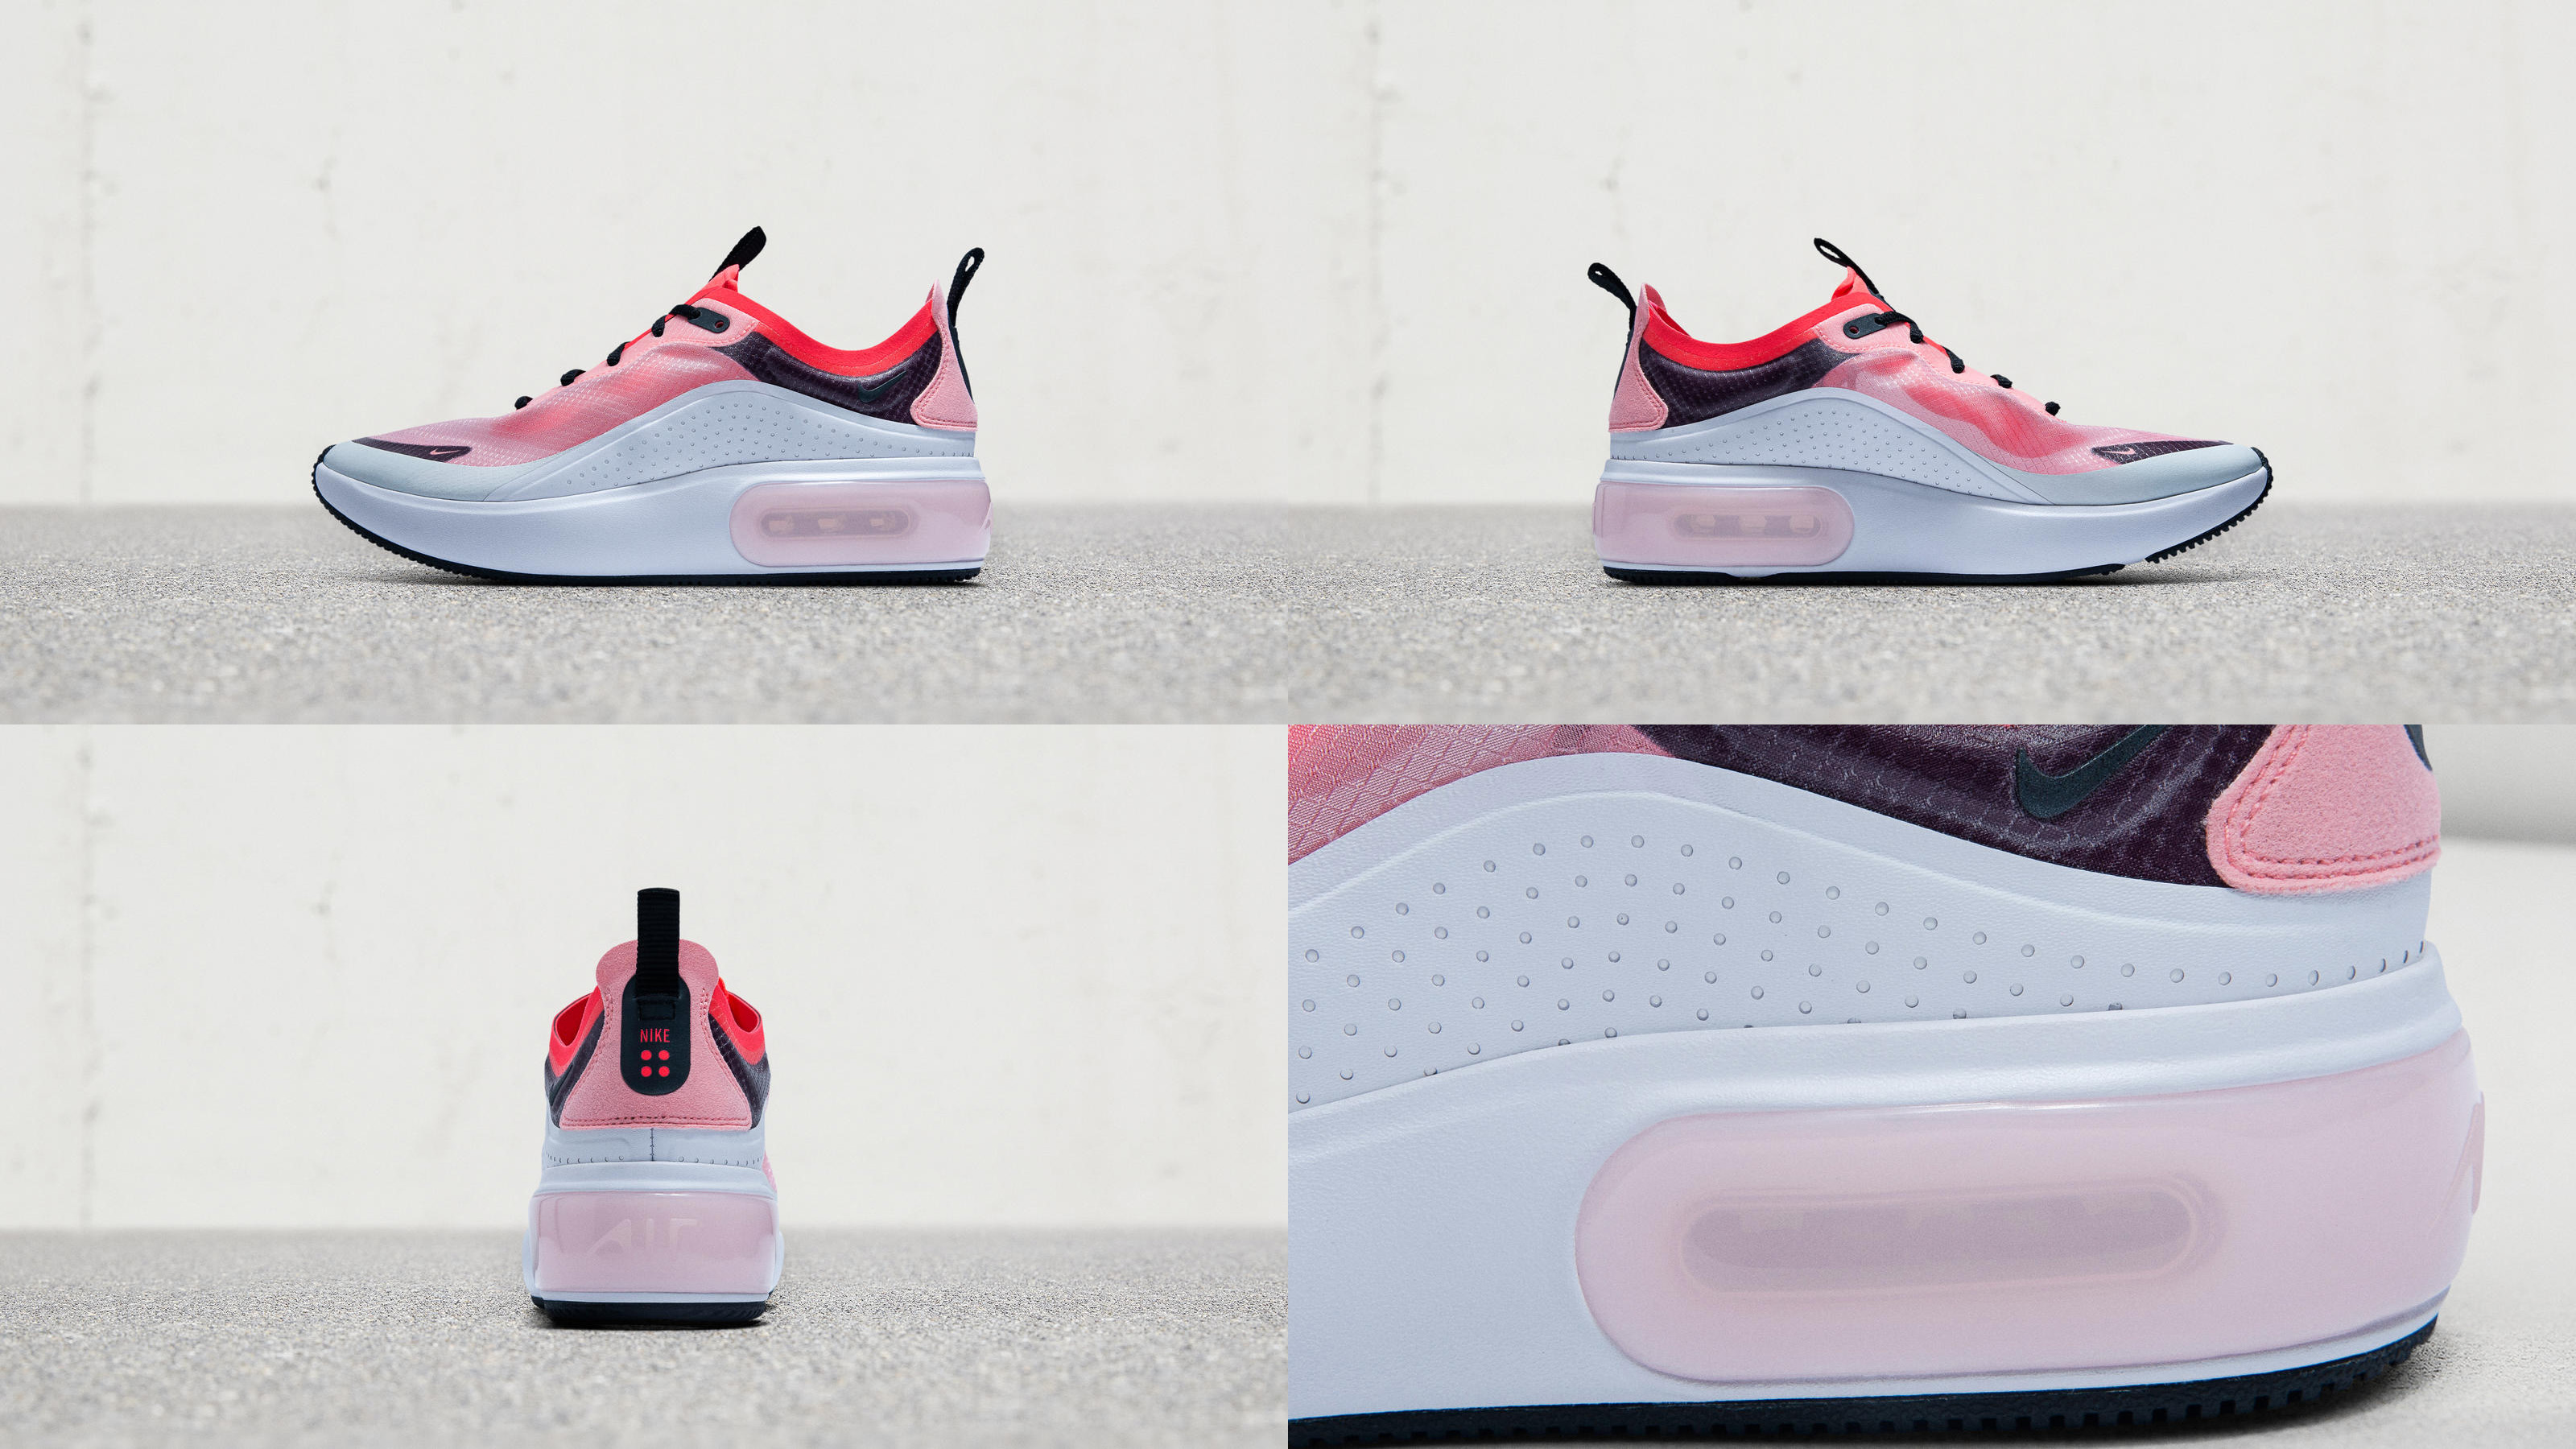 vertical Una herramienta central que juega un papel importante. Mm  Nike Air Max Dia女子鞋款: 摩登优雅的Air新成员